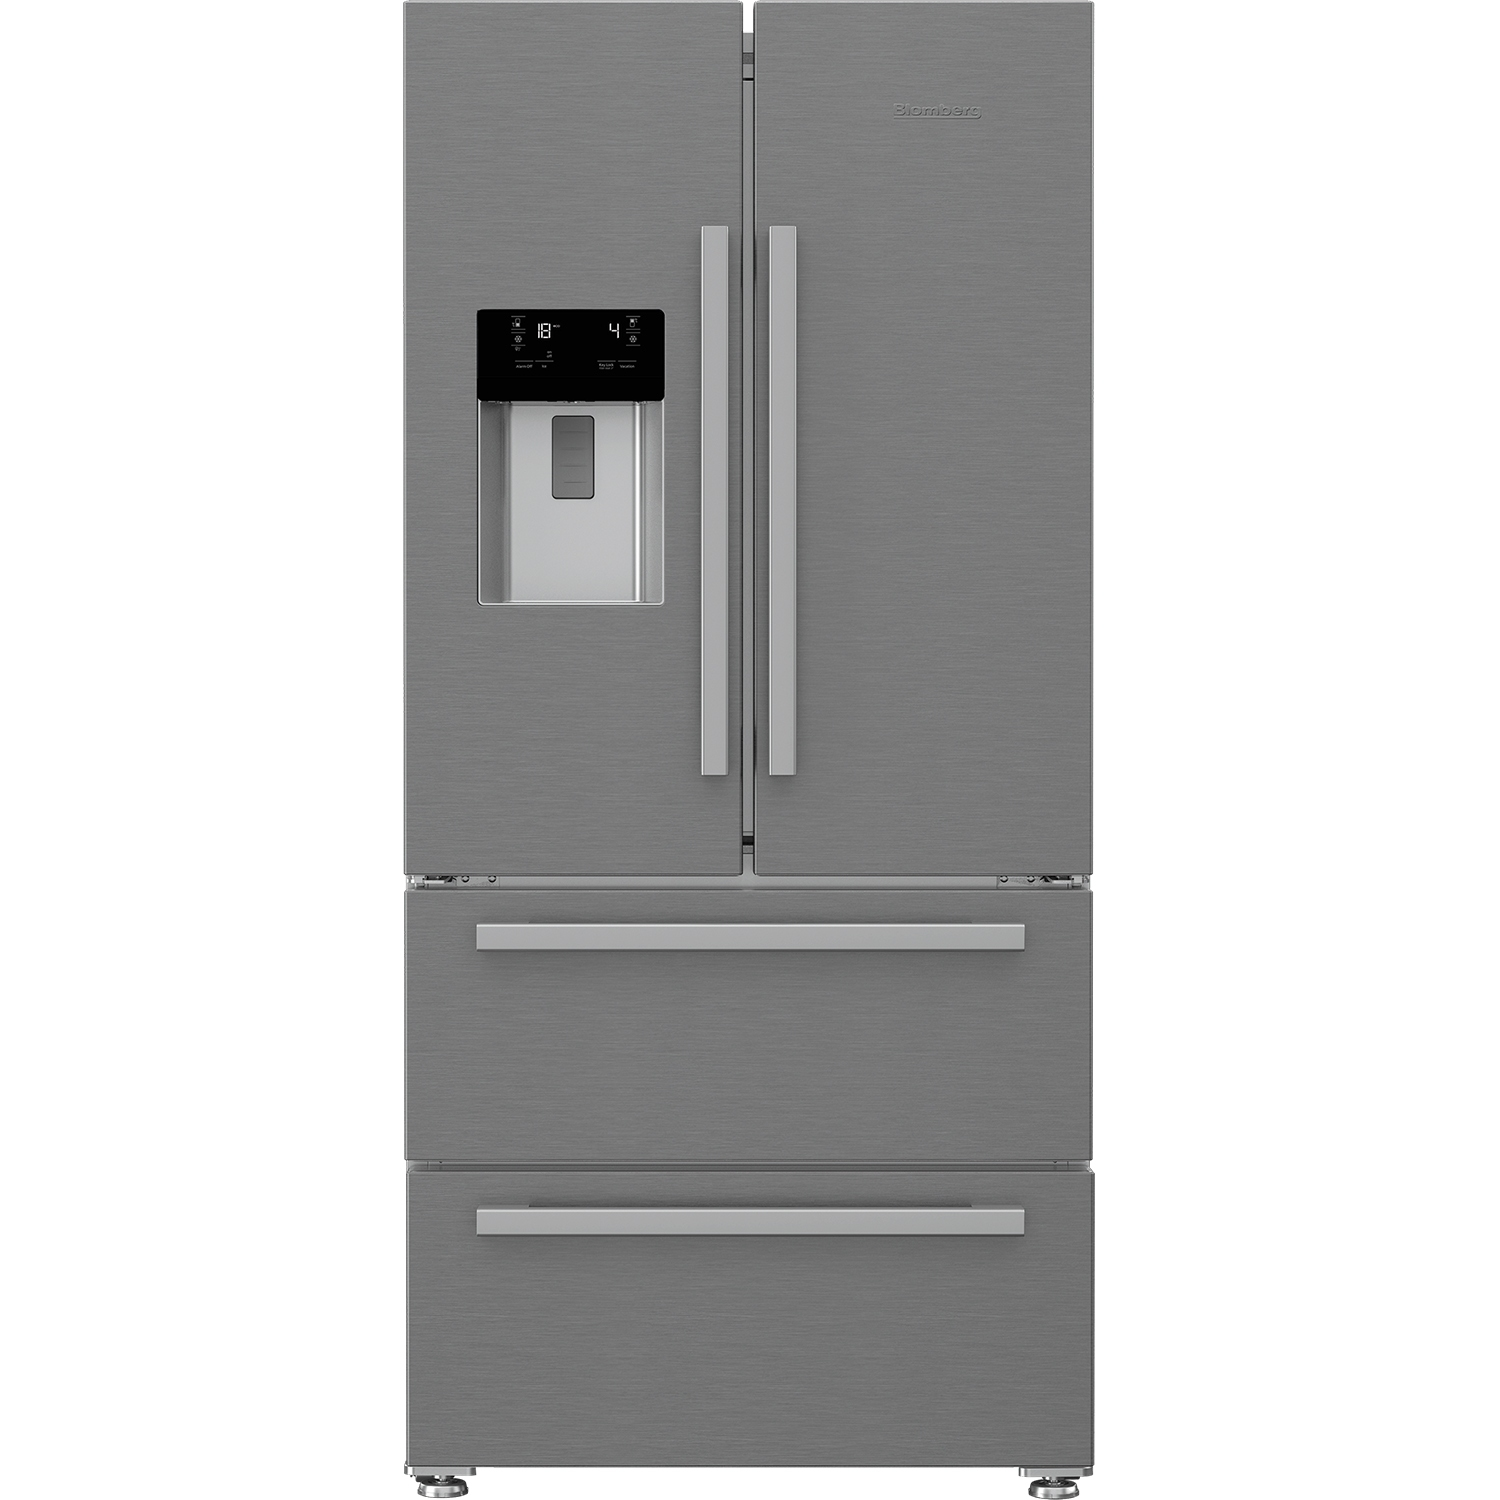 Blomberg Frost Free American Style Fridge Freezer - Stainless Steel - A+ Energy Rated - 0